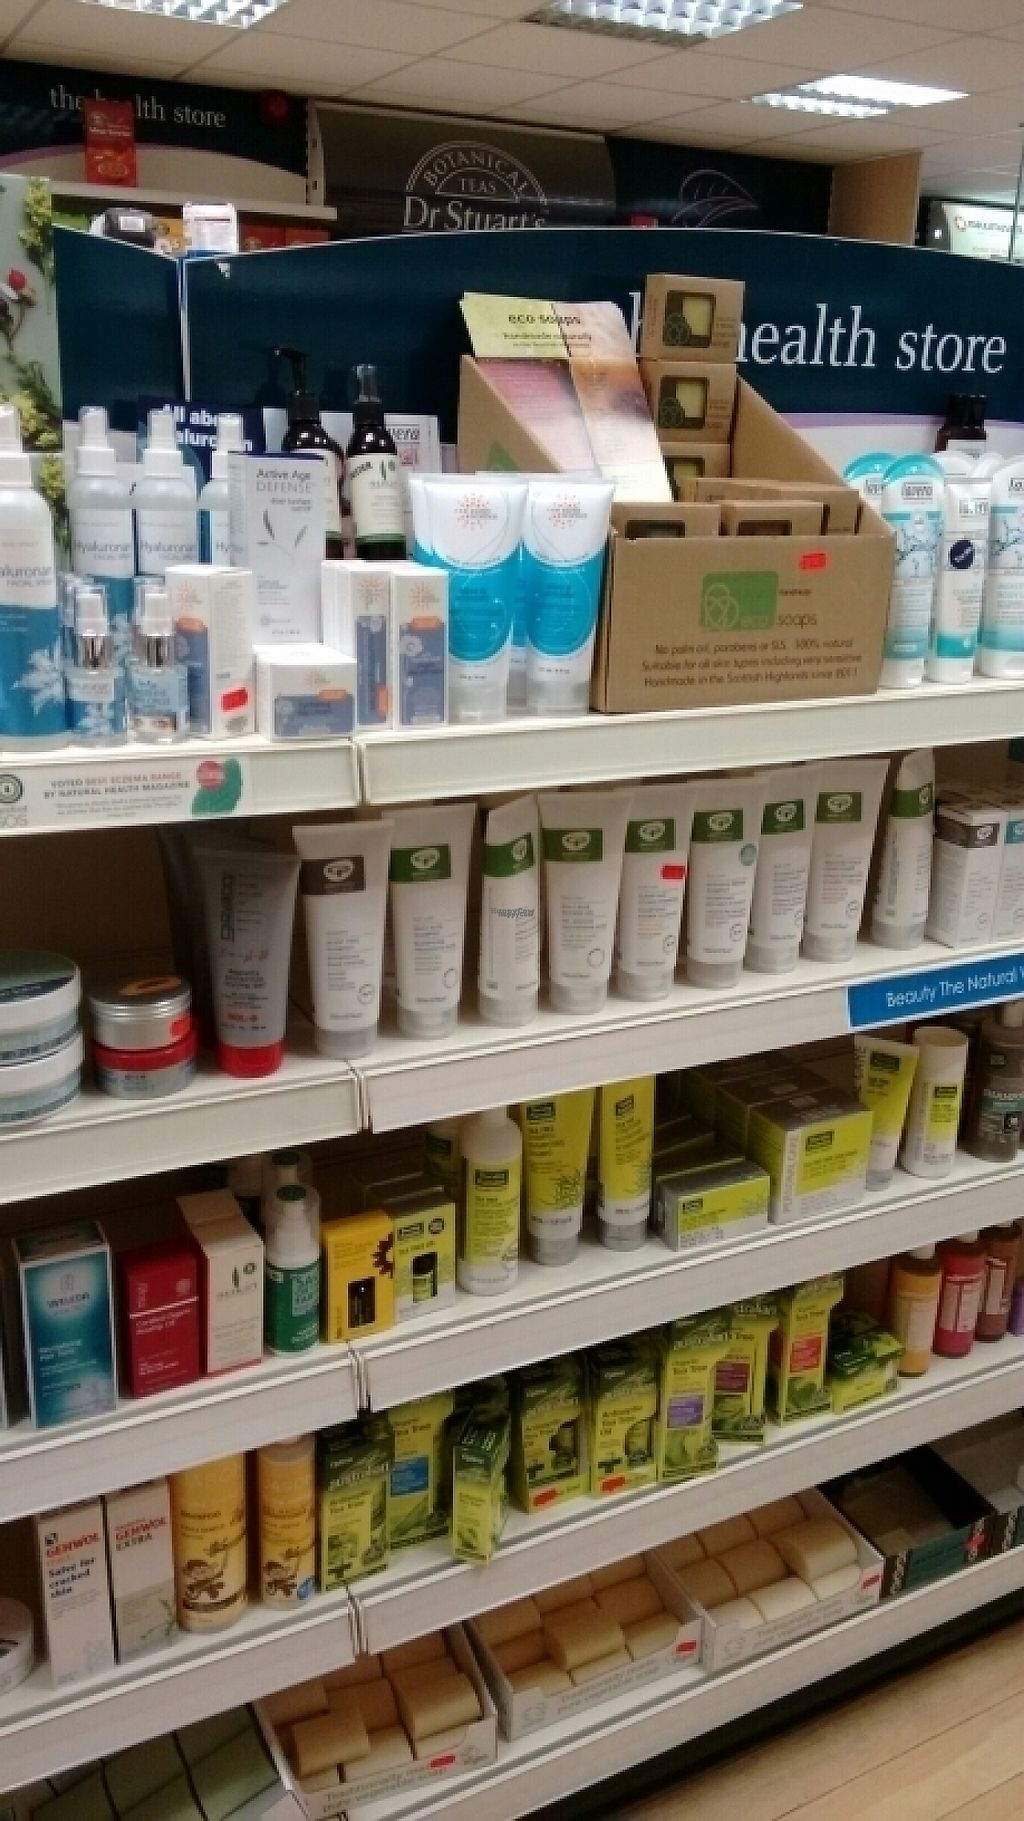 """Photo of The Health Store  by <a href=""""/members/profile/craigmc"""">craigmc</a> <br/>ethical <br/> November 19, 2016  - <a href='/contact/abuse/image/32642/192100'>Report</a>"""